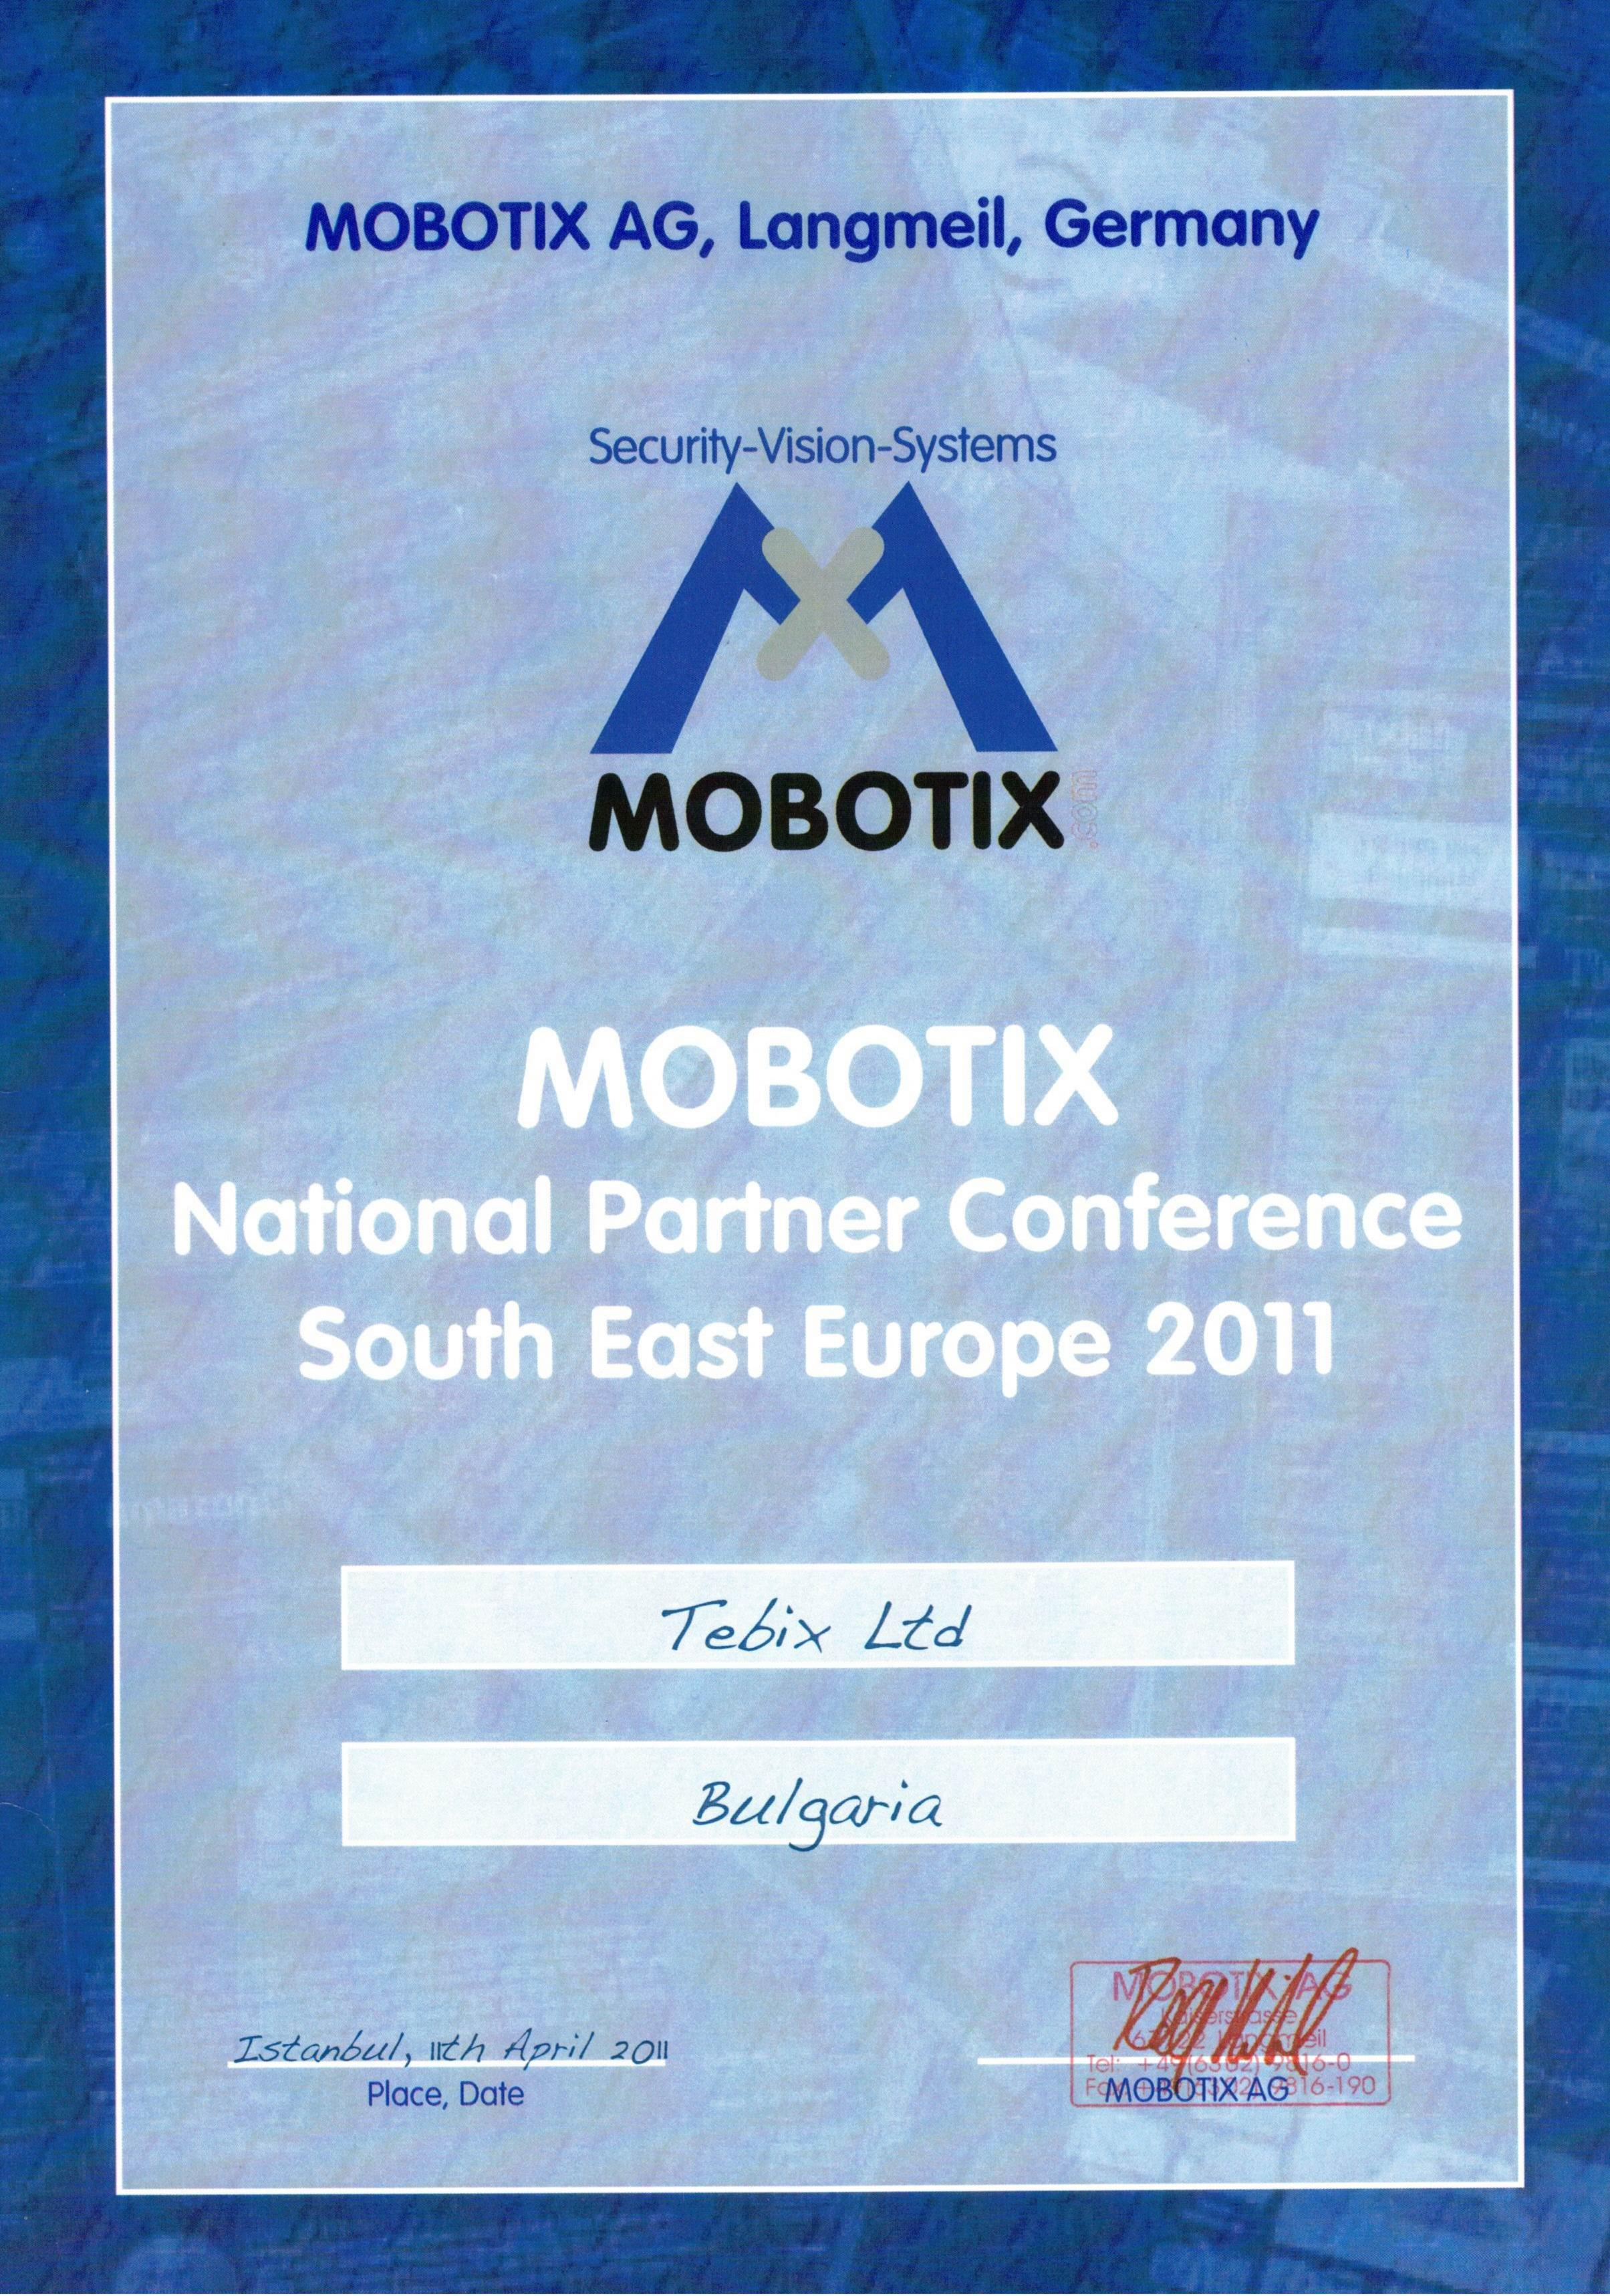 MOBOTIX national partner